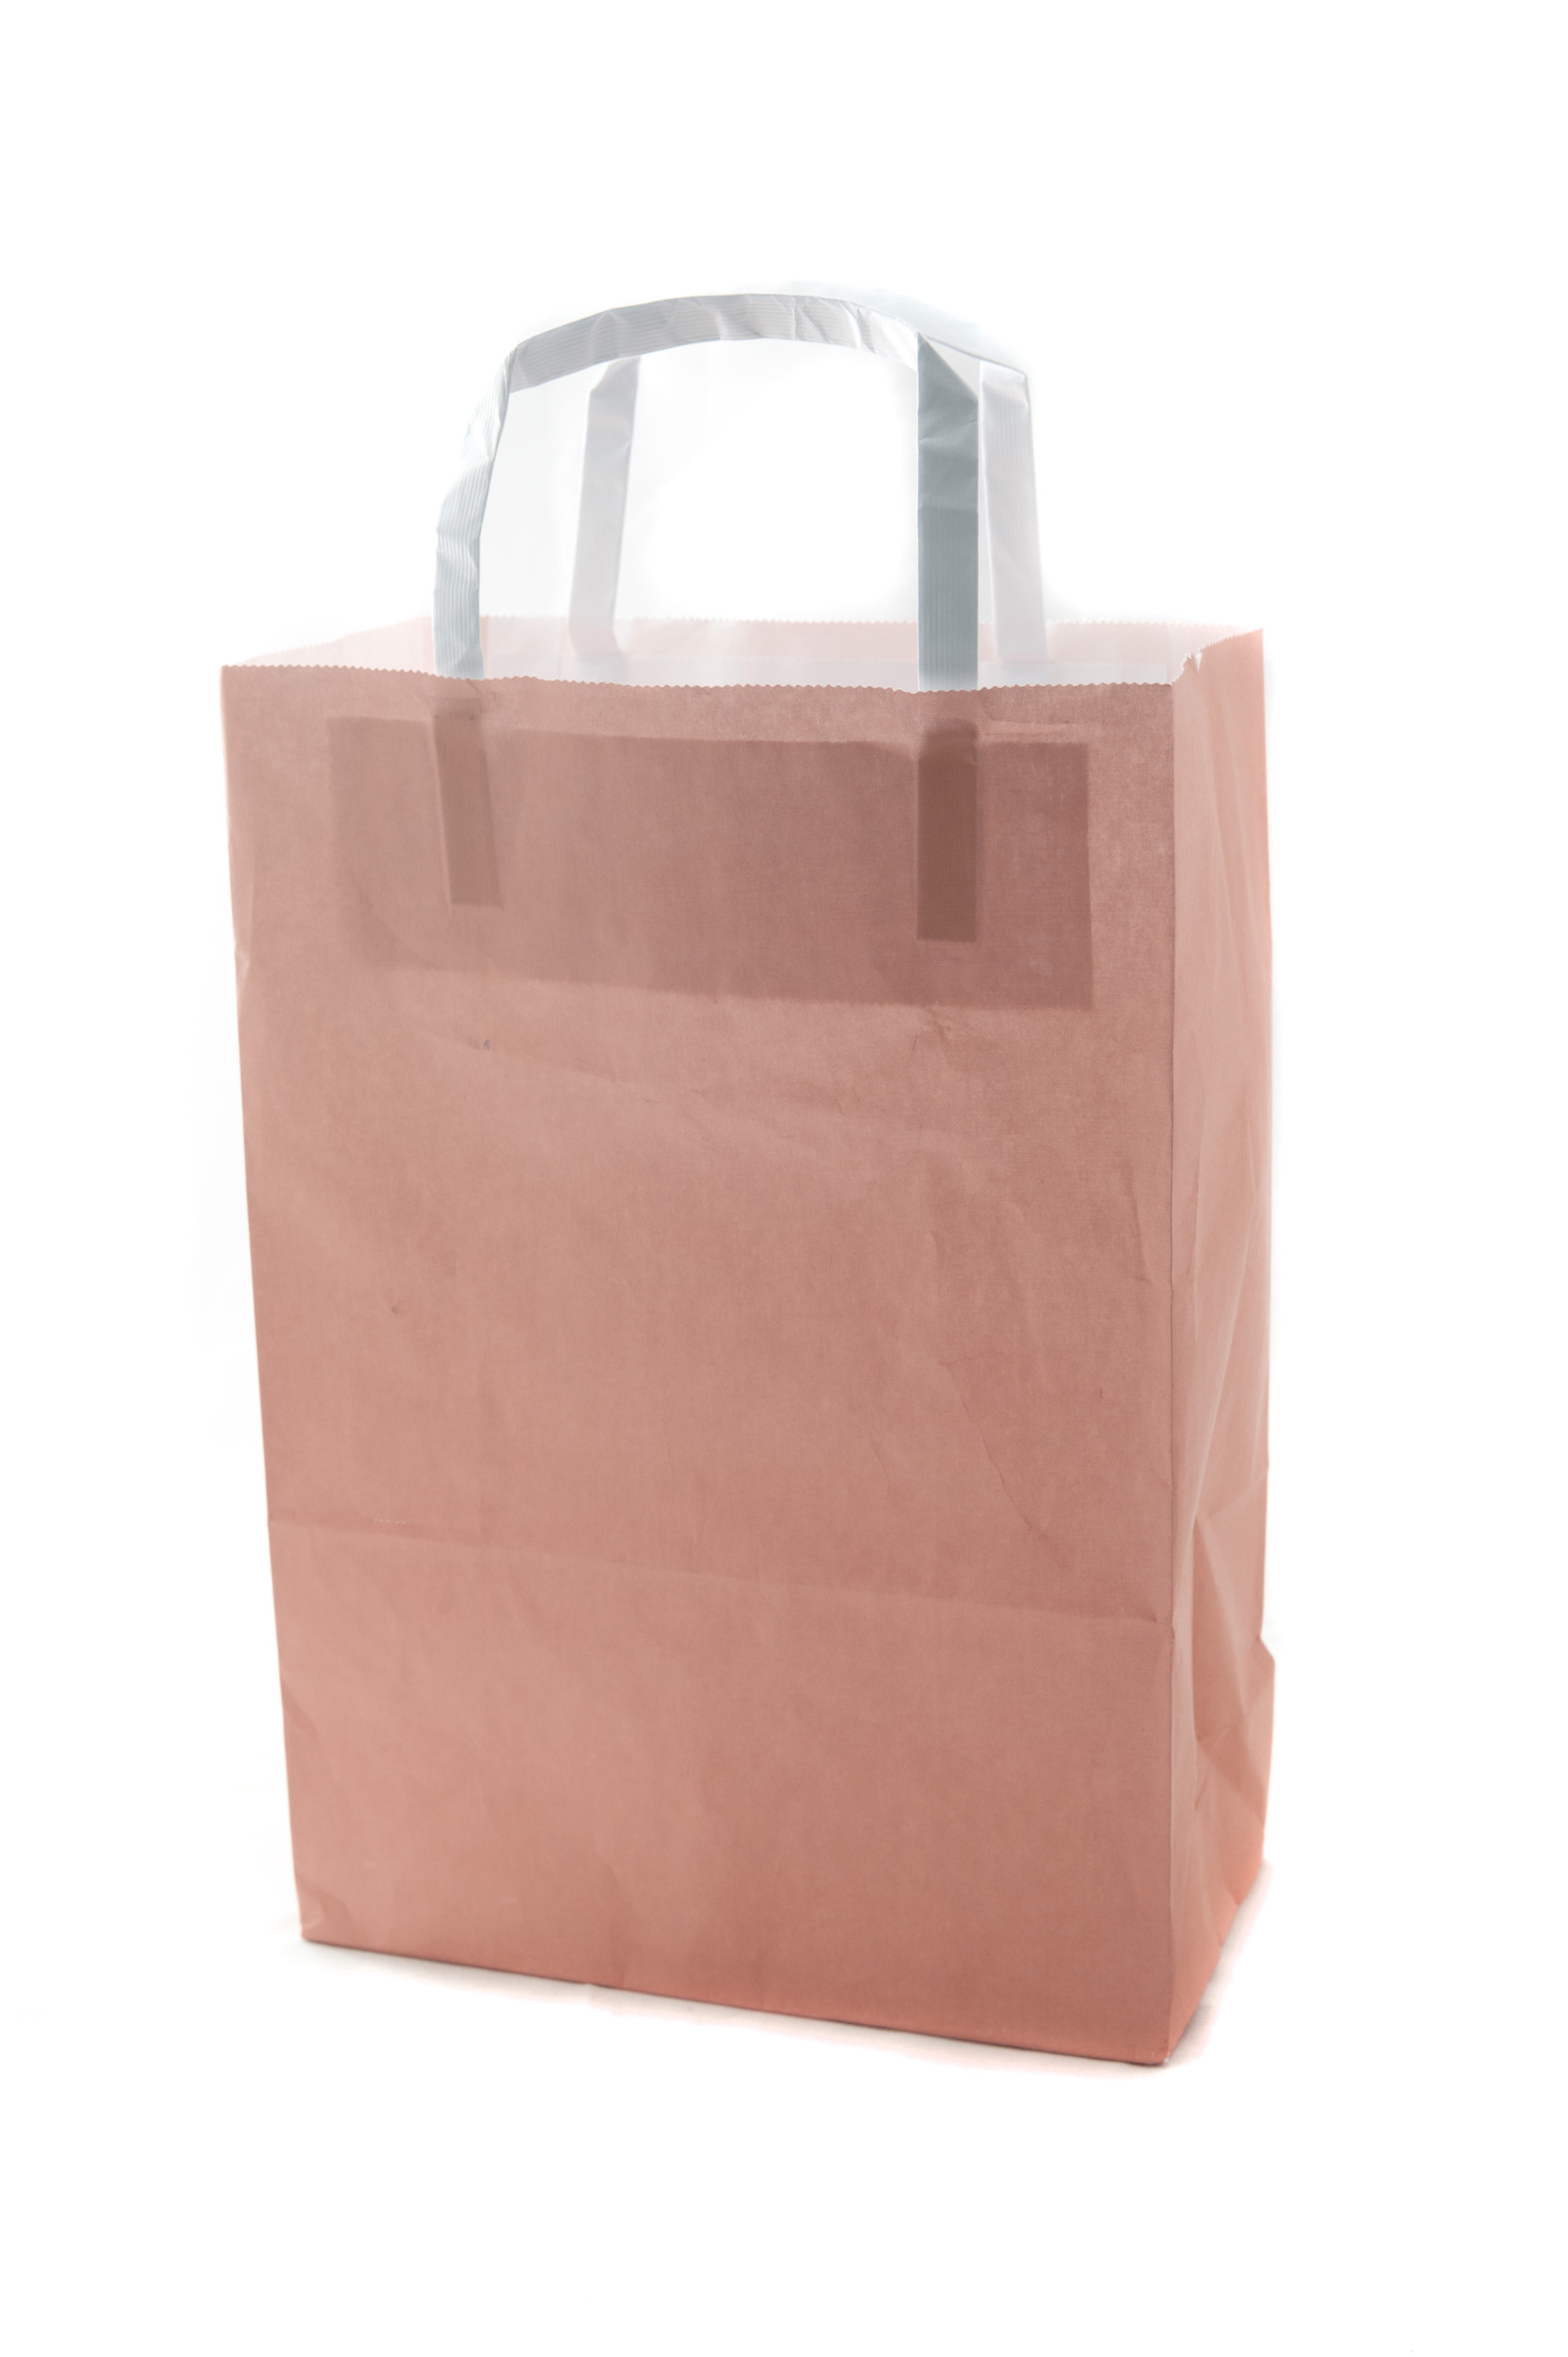 Brown Paper Bags With Handles Kmart Photo Of Brown Paper Gift Or Carrier Bag Free Christmas